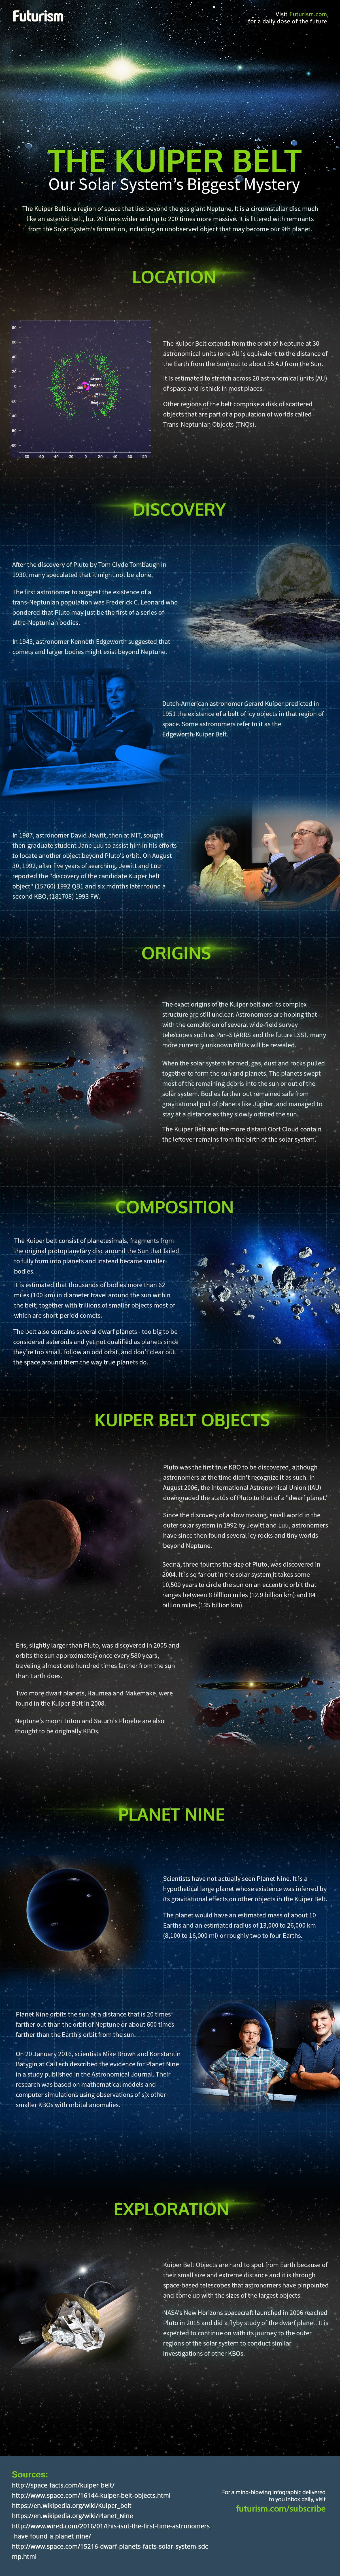 The Kuiper Belt is home to many of the solar systems comets, asteroids, and dwarf planets  Because it's so far from the Sun, there's much we still don't know about it  is part of Kuiper belt -